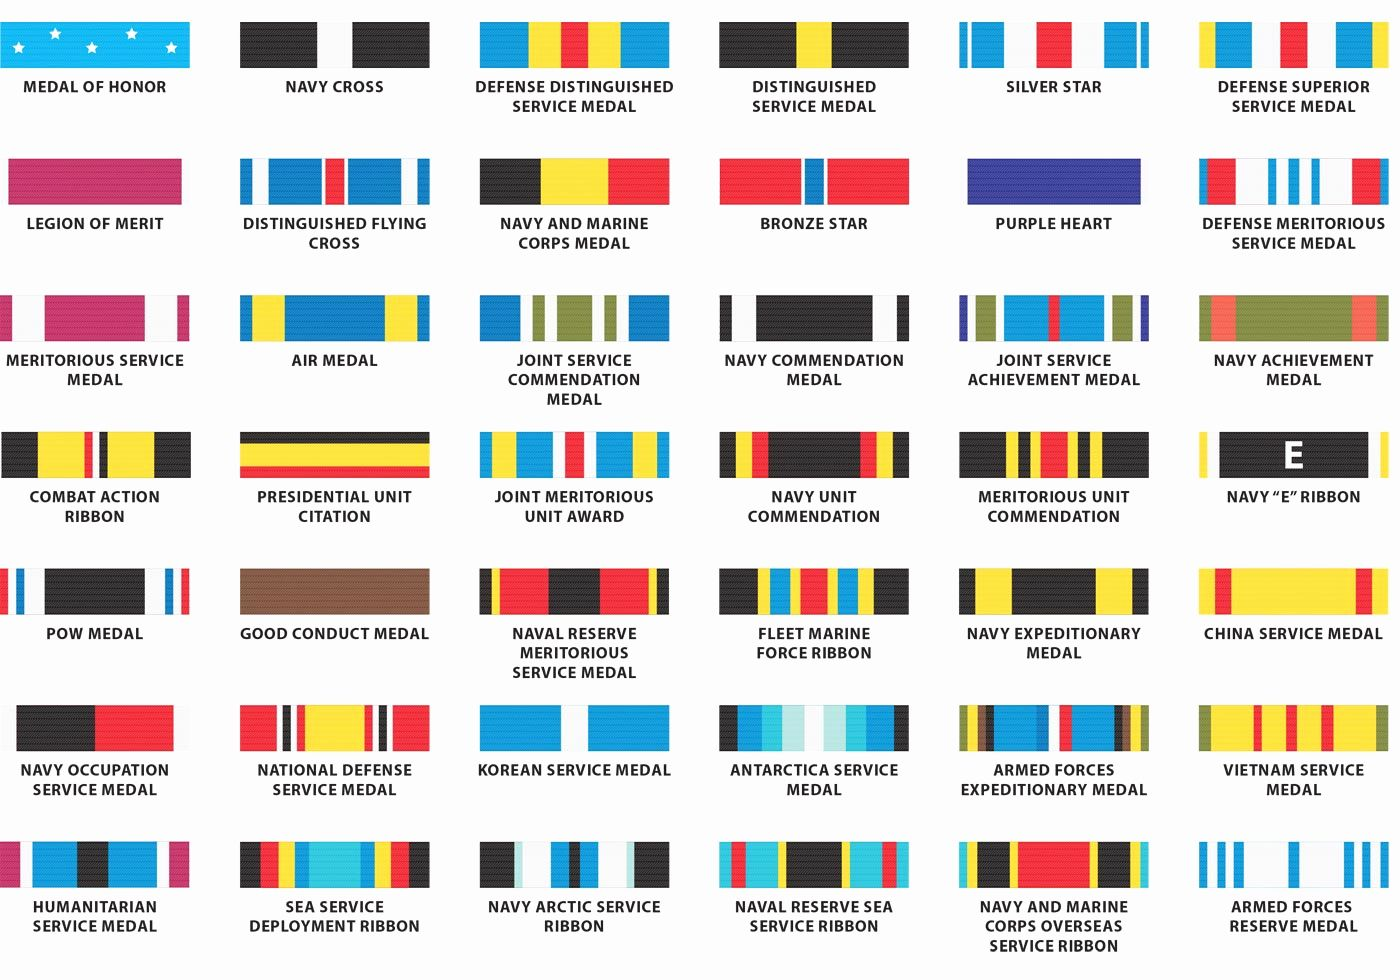 Thorough Military Decoration Chart Usmc Medal Precedence